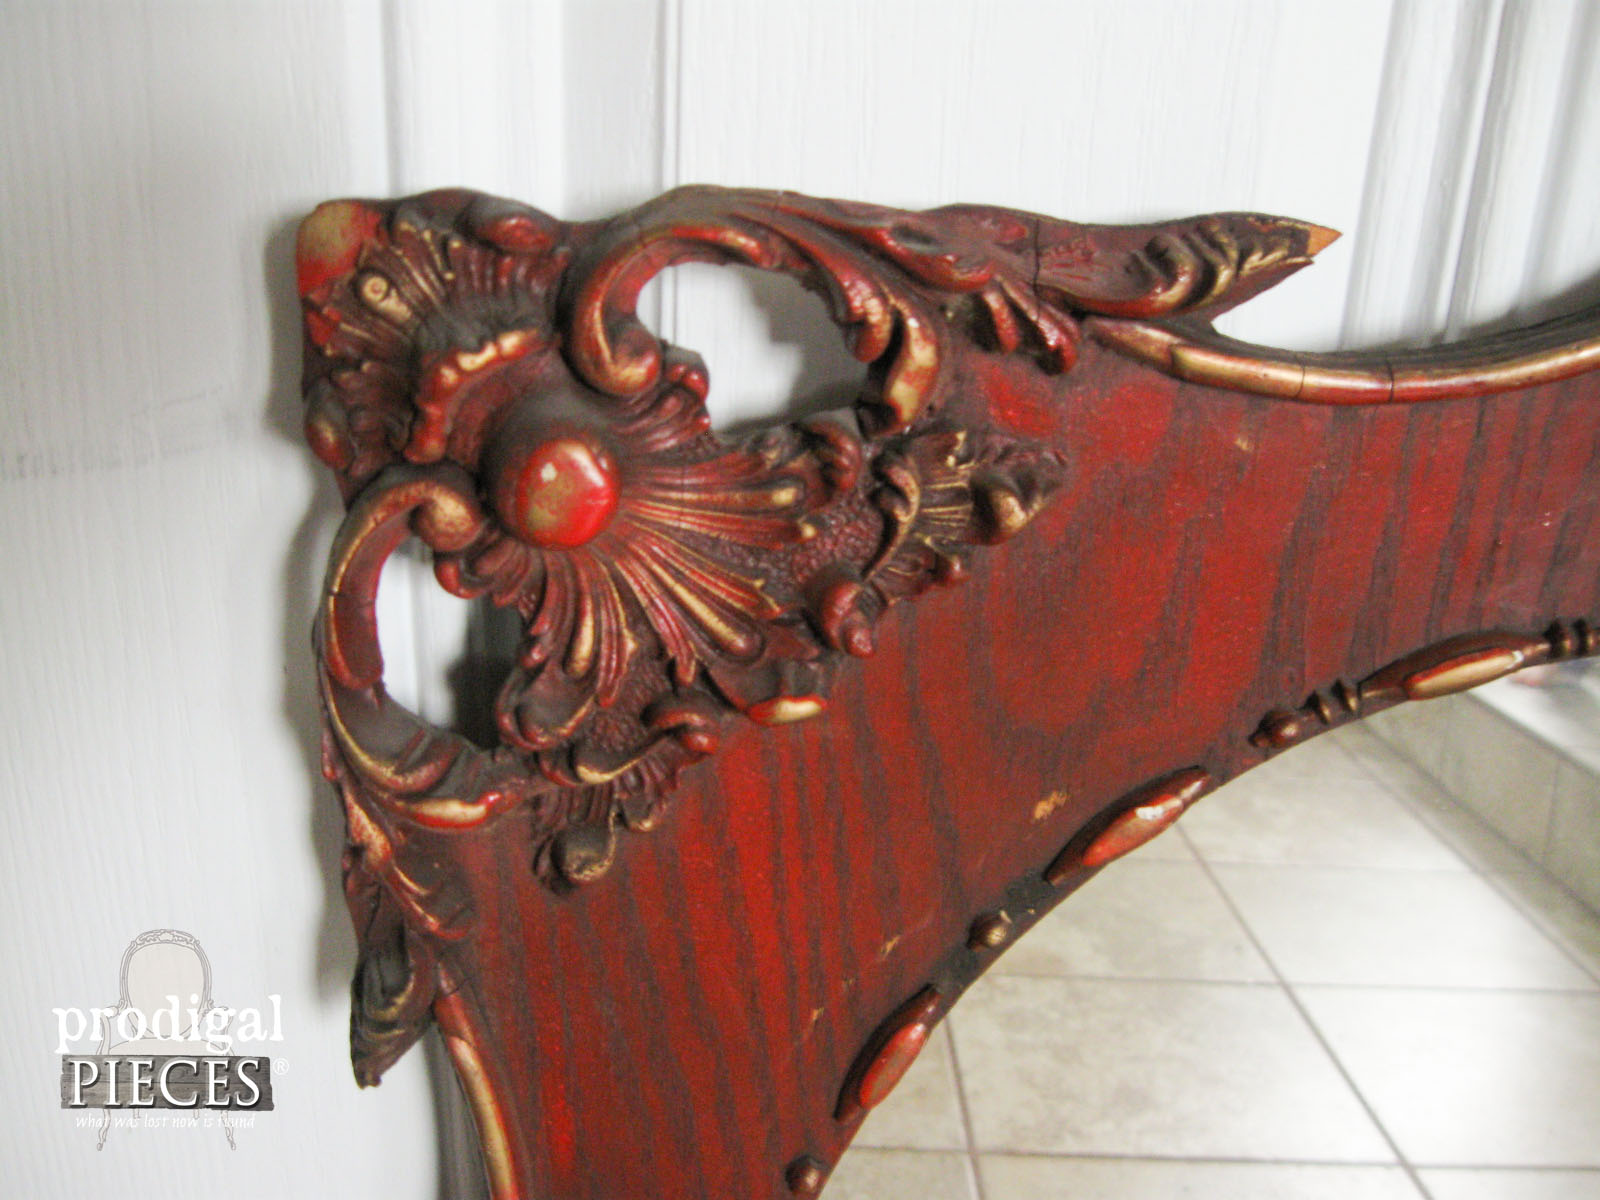 Corner of Ornate Mirror for Aged Finish Treatment | Prodigal Pieces | www.prodigalpieces.com